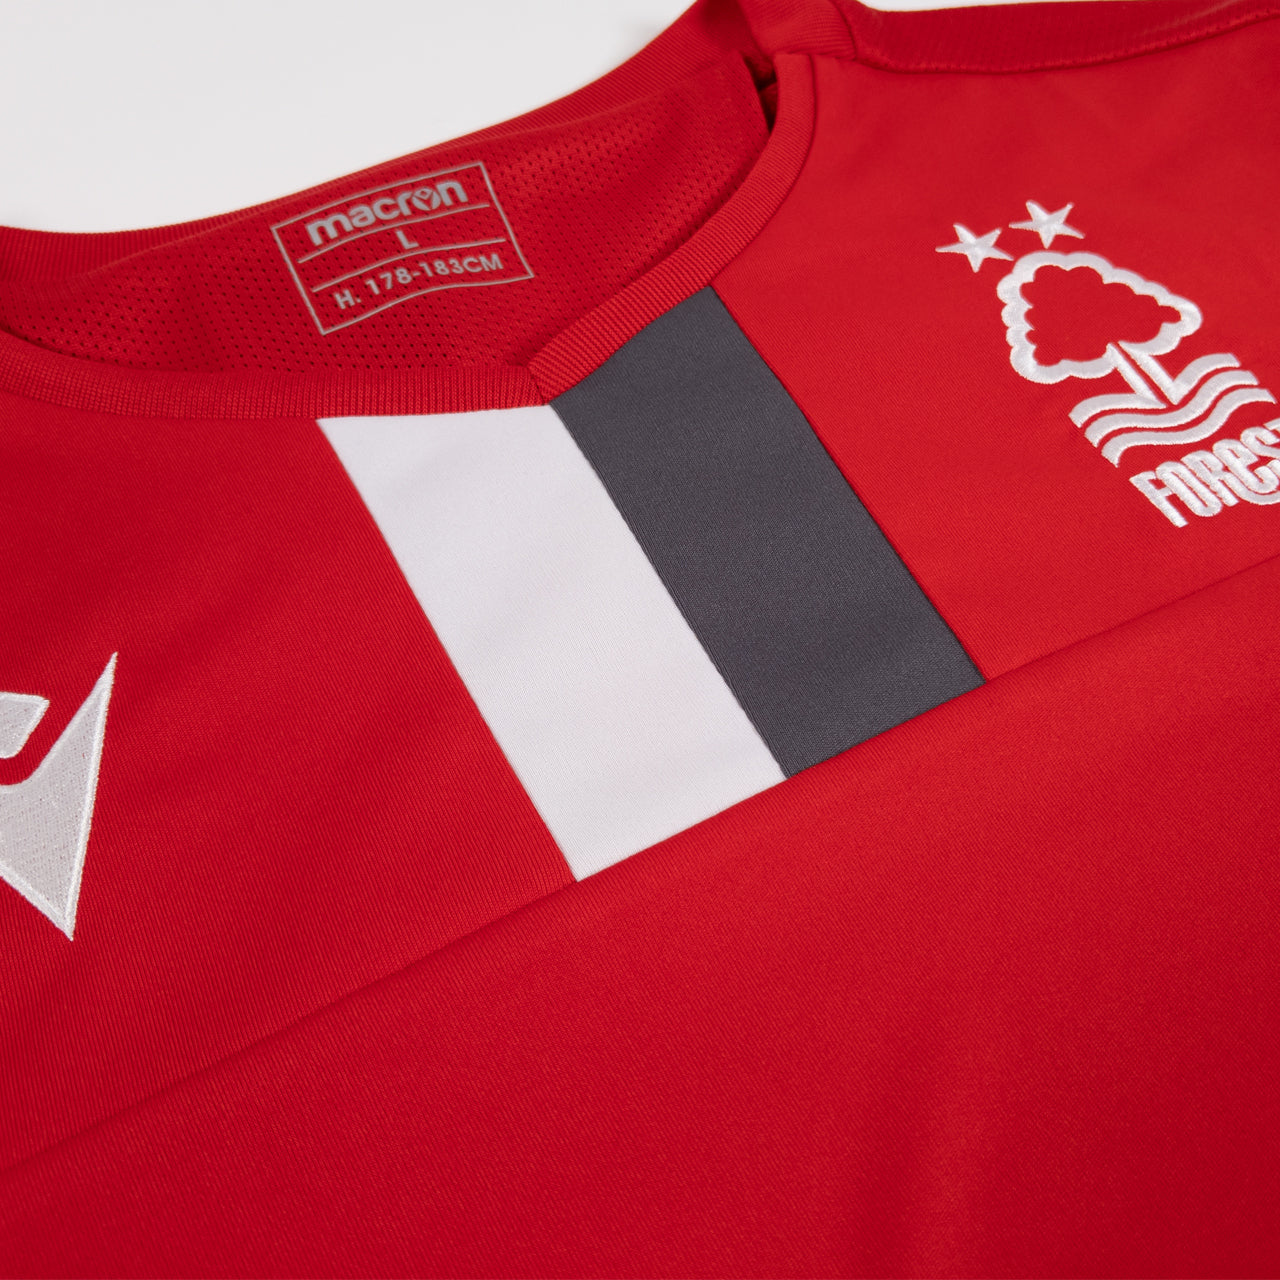 NFFC Mens Player Training Jersey 19/20